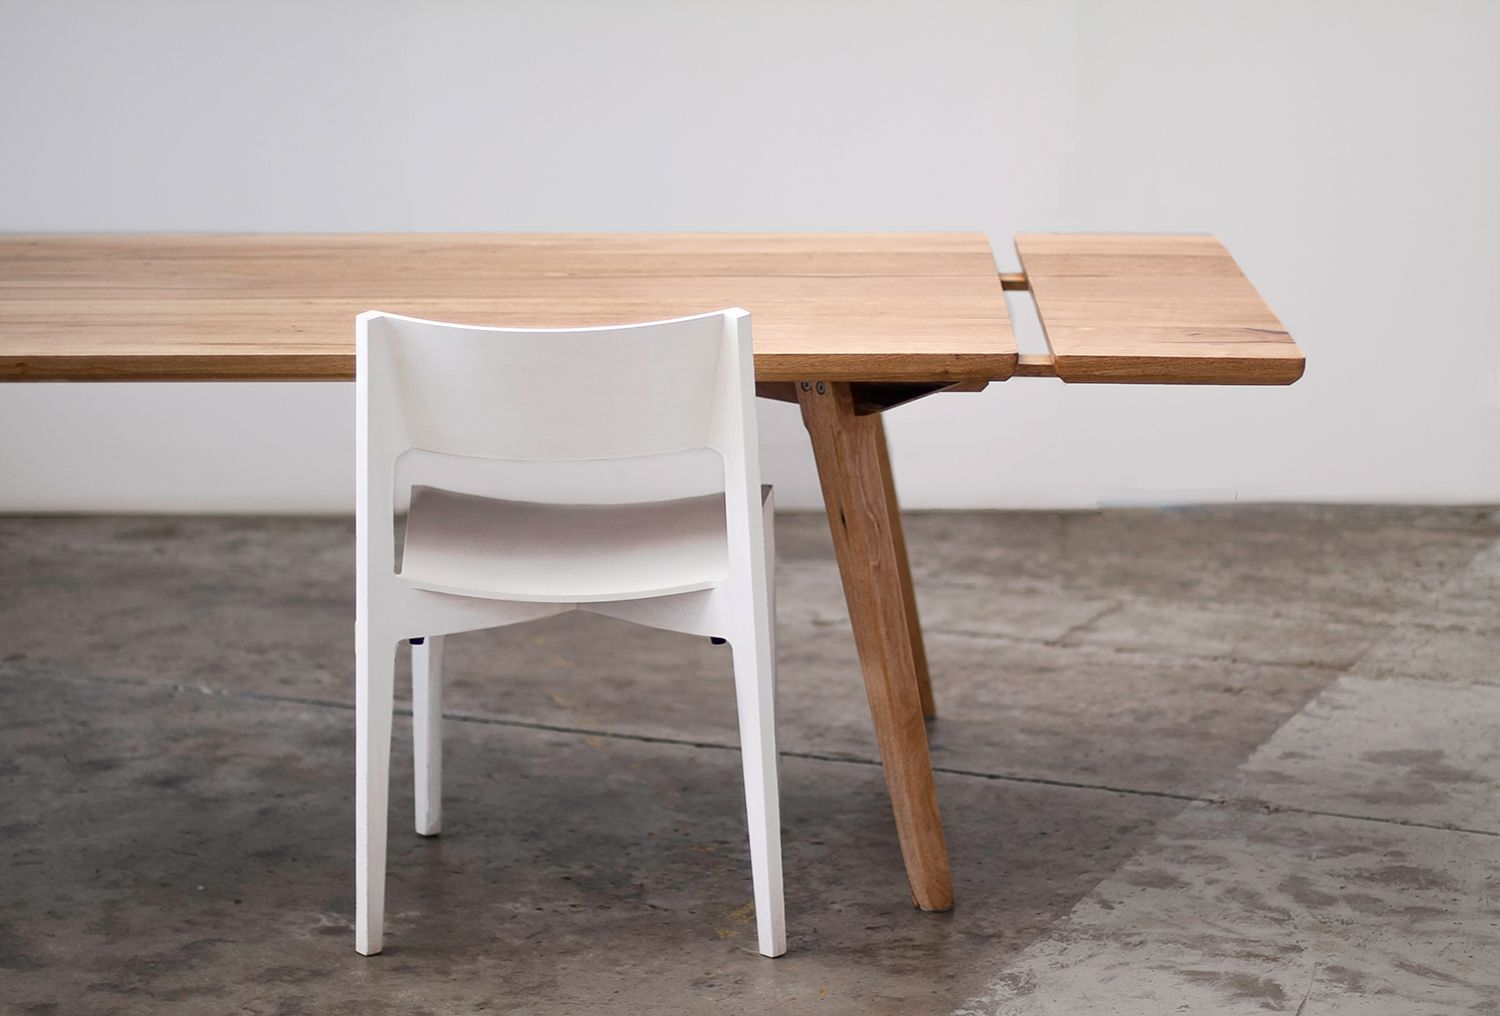 Jordan Table Extendable Recycled Timber Furniture Melbourne